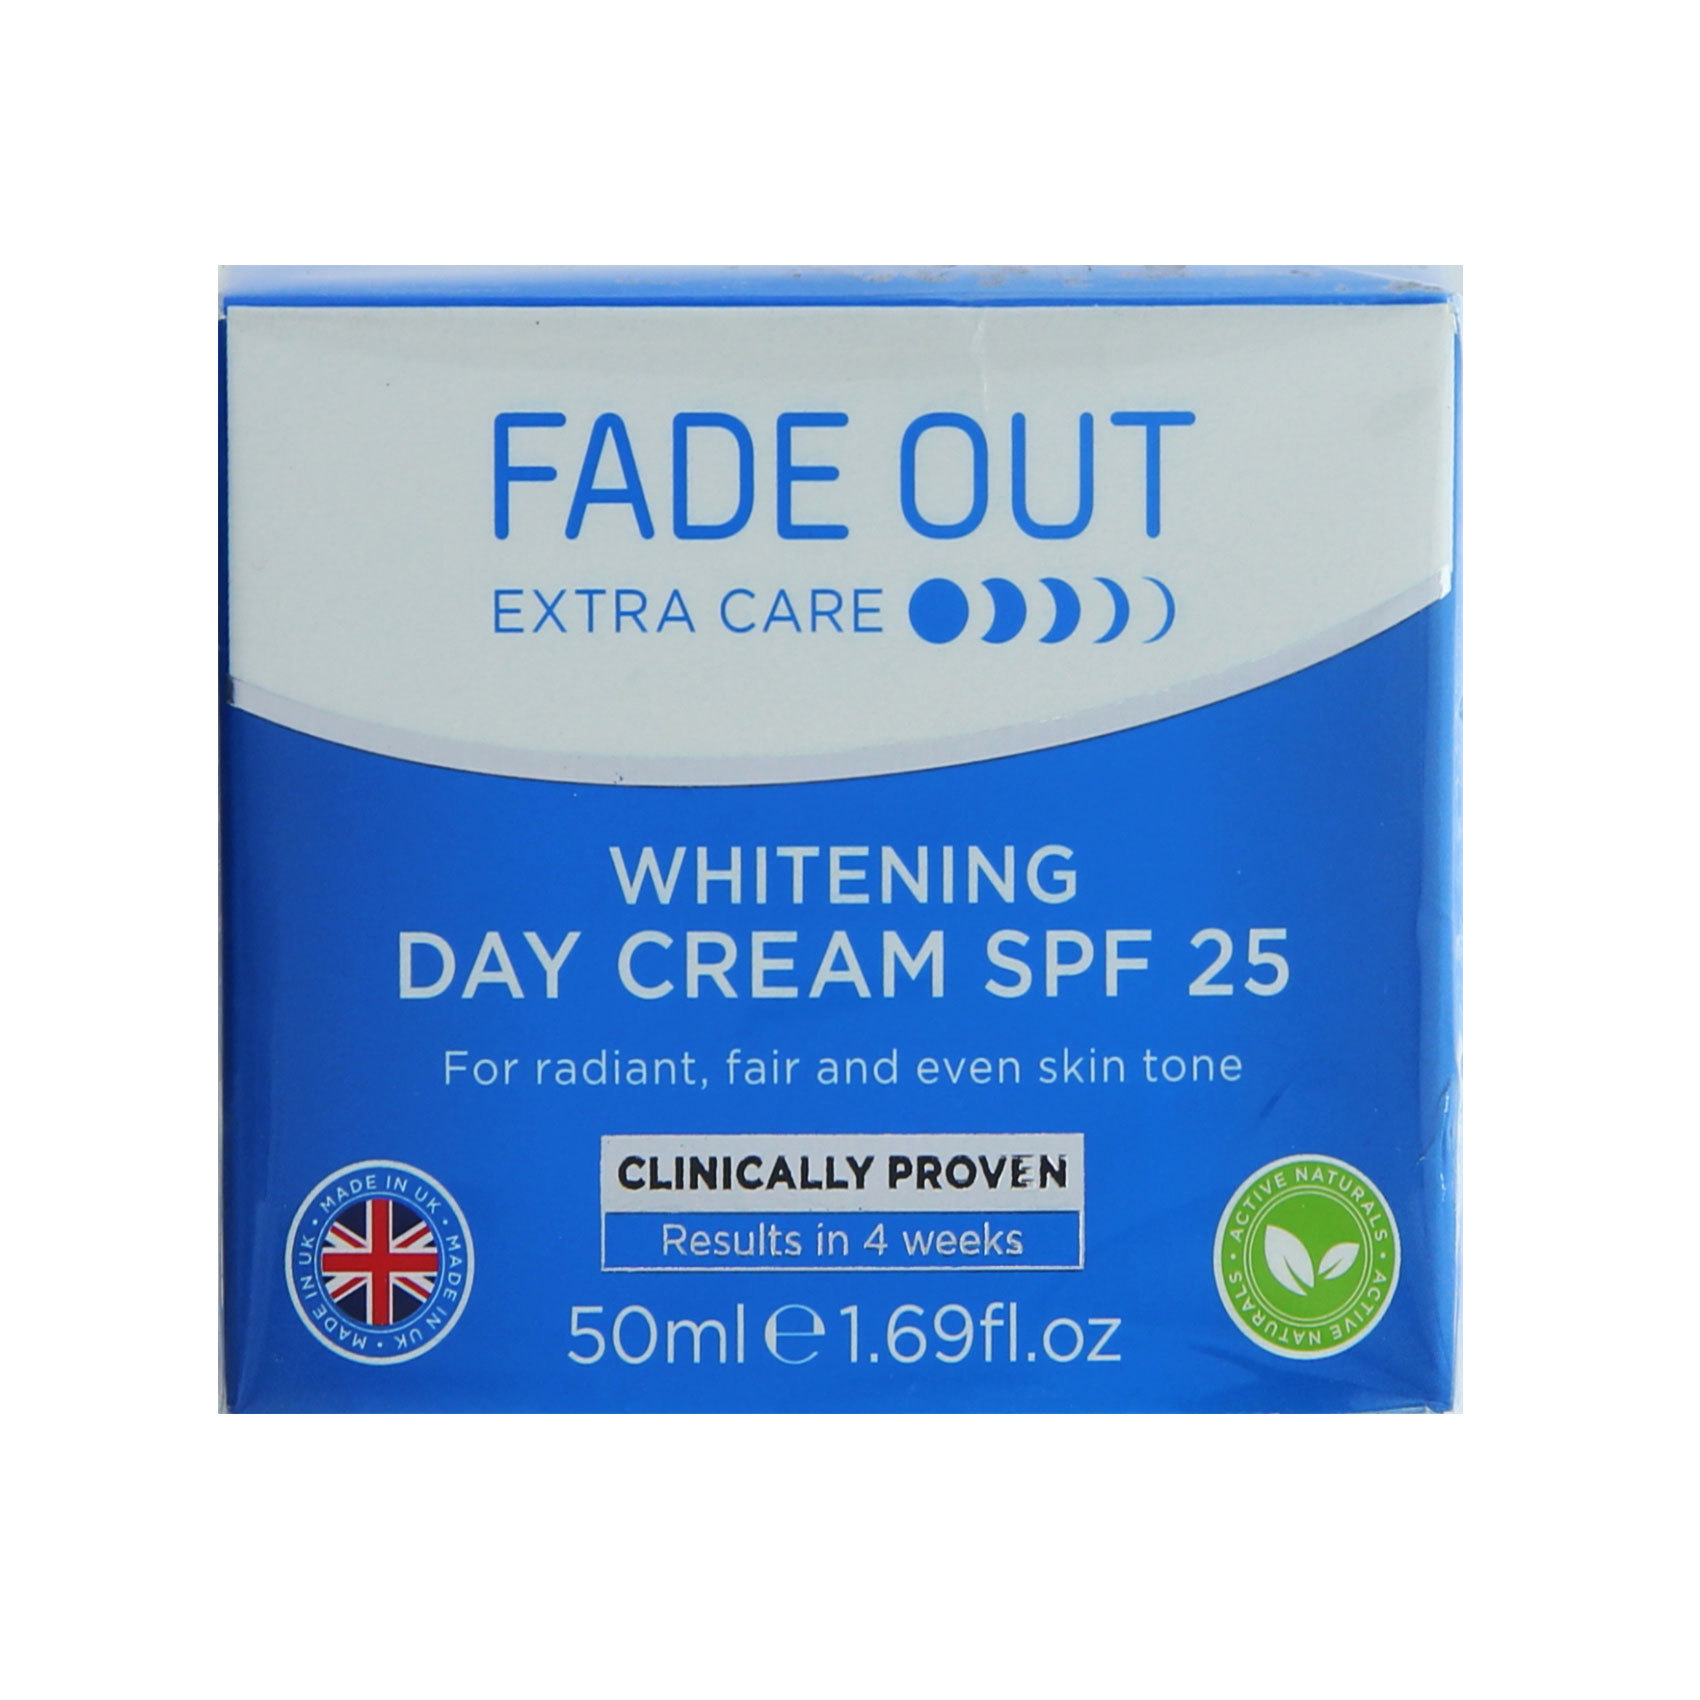 FADE OUT FADE CRM EXTRA CARE 50ML